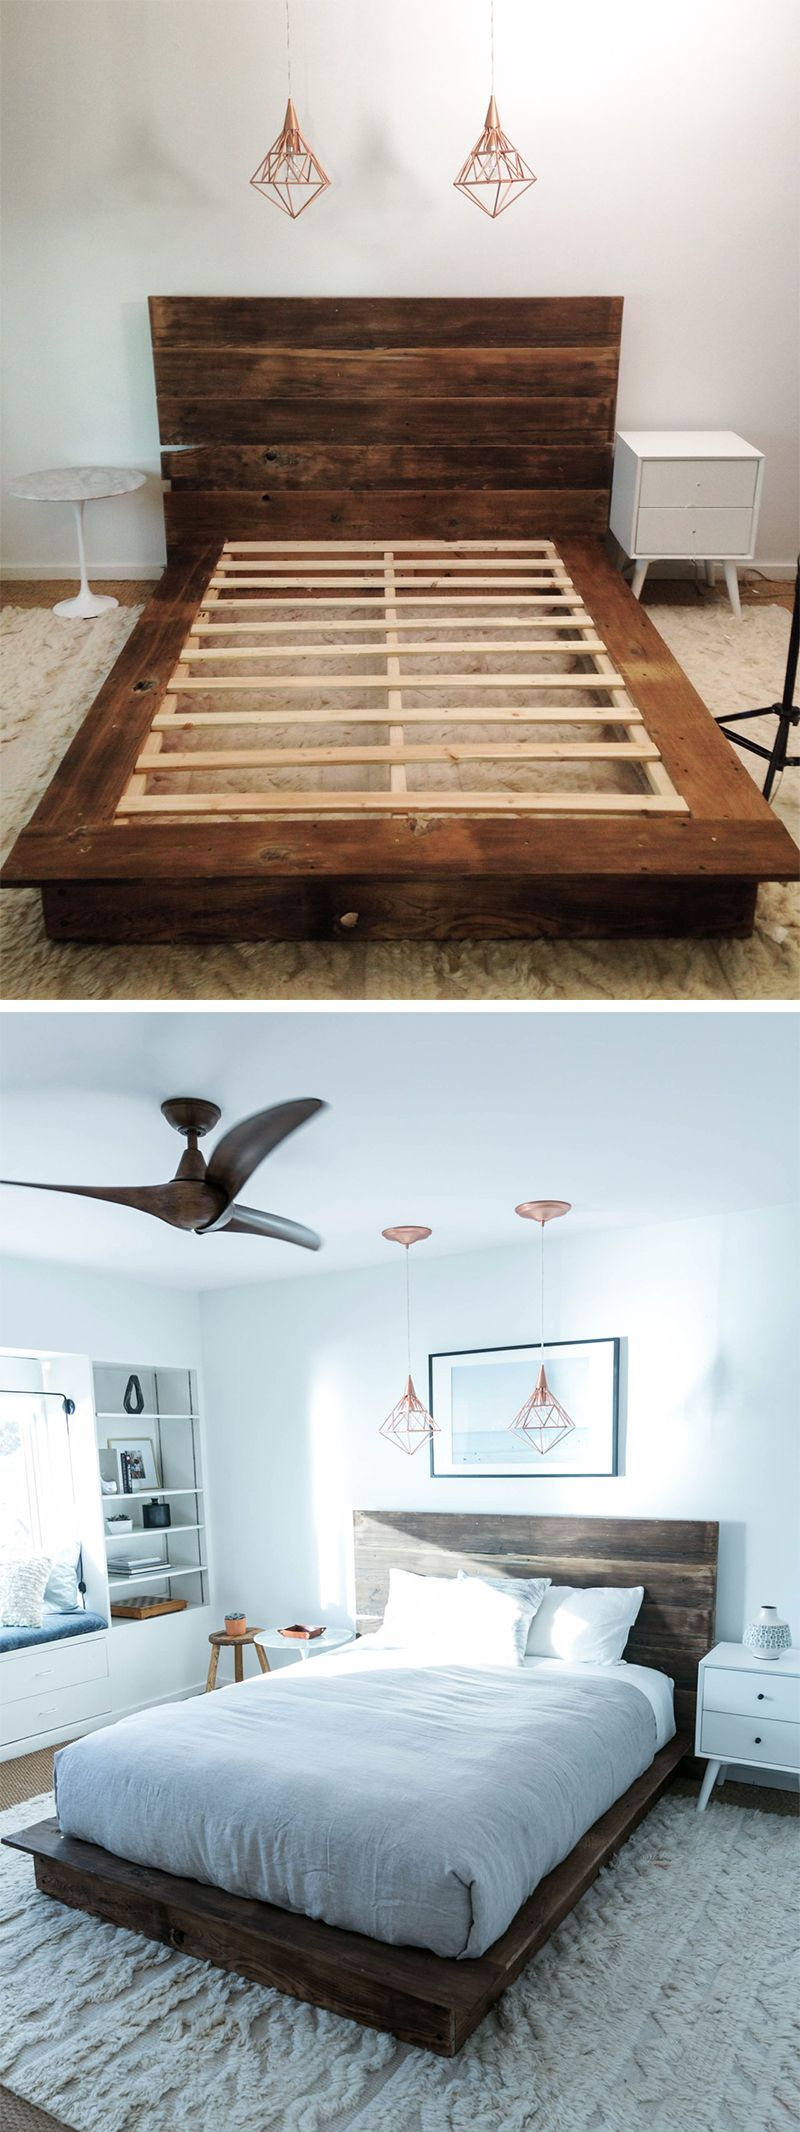 DIY Reclaimed Wood Platform Bed | Pinterest | Wood platform bed ...